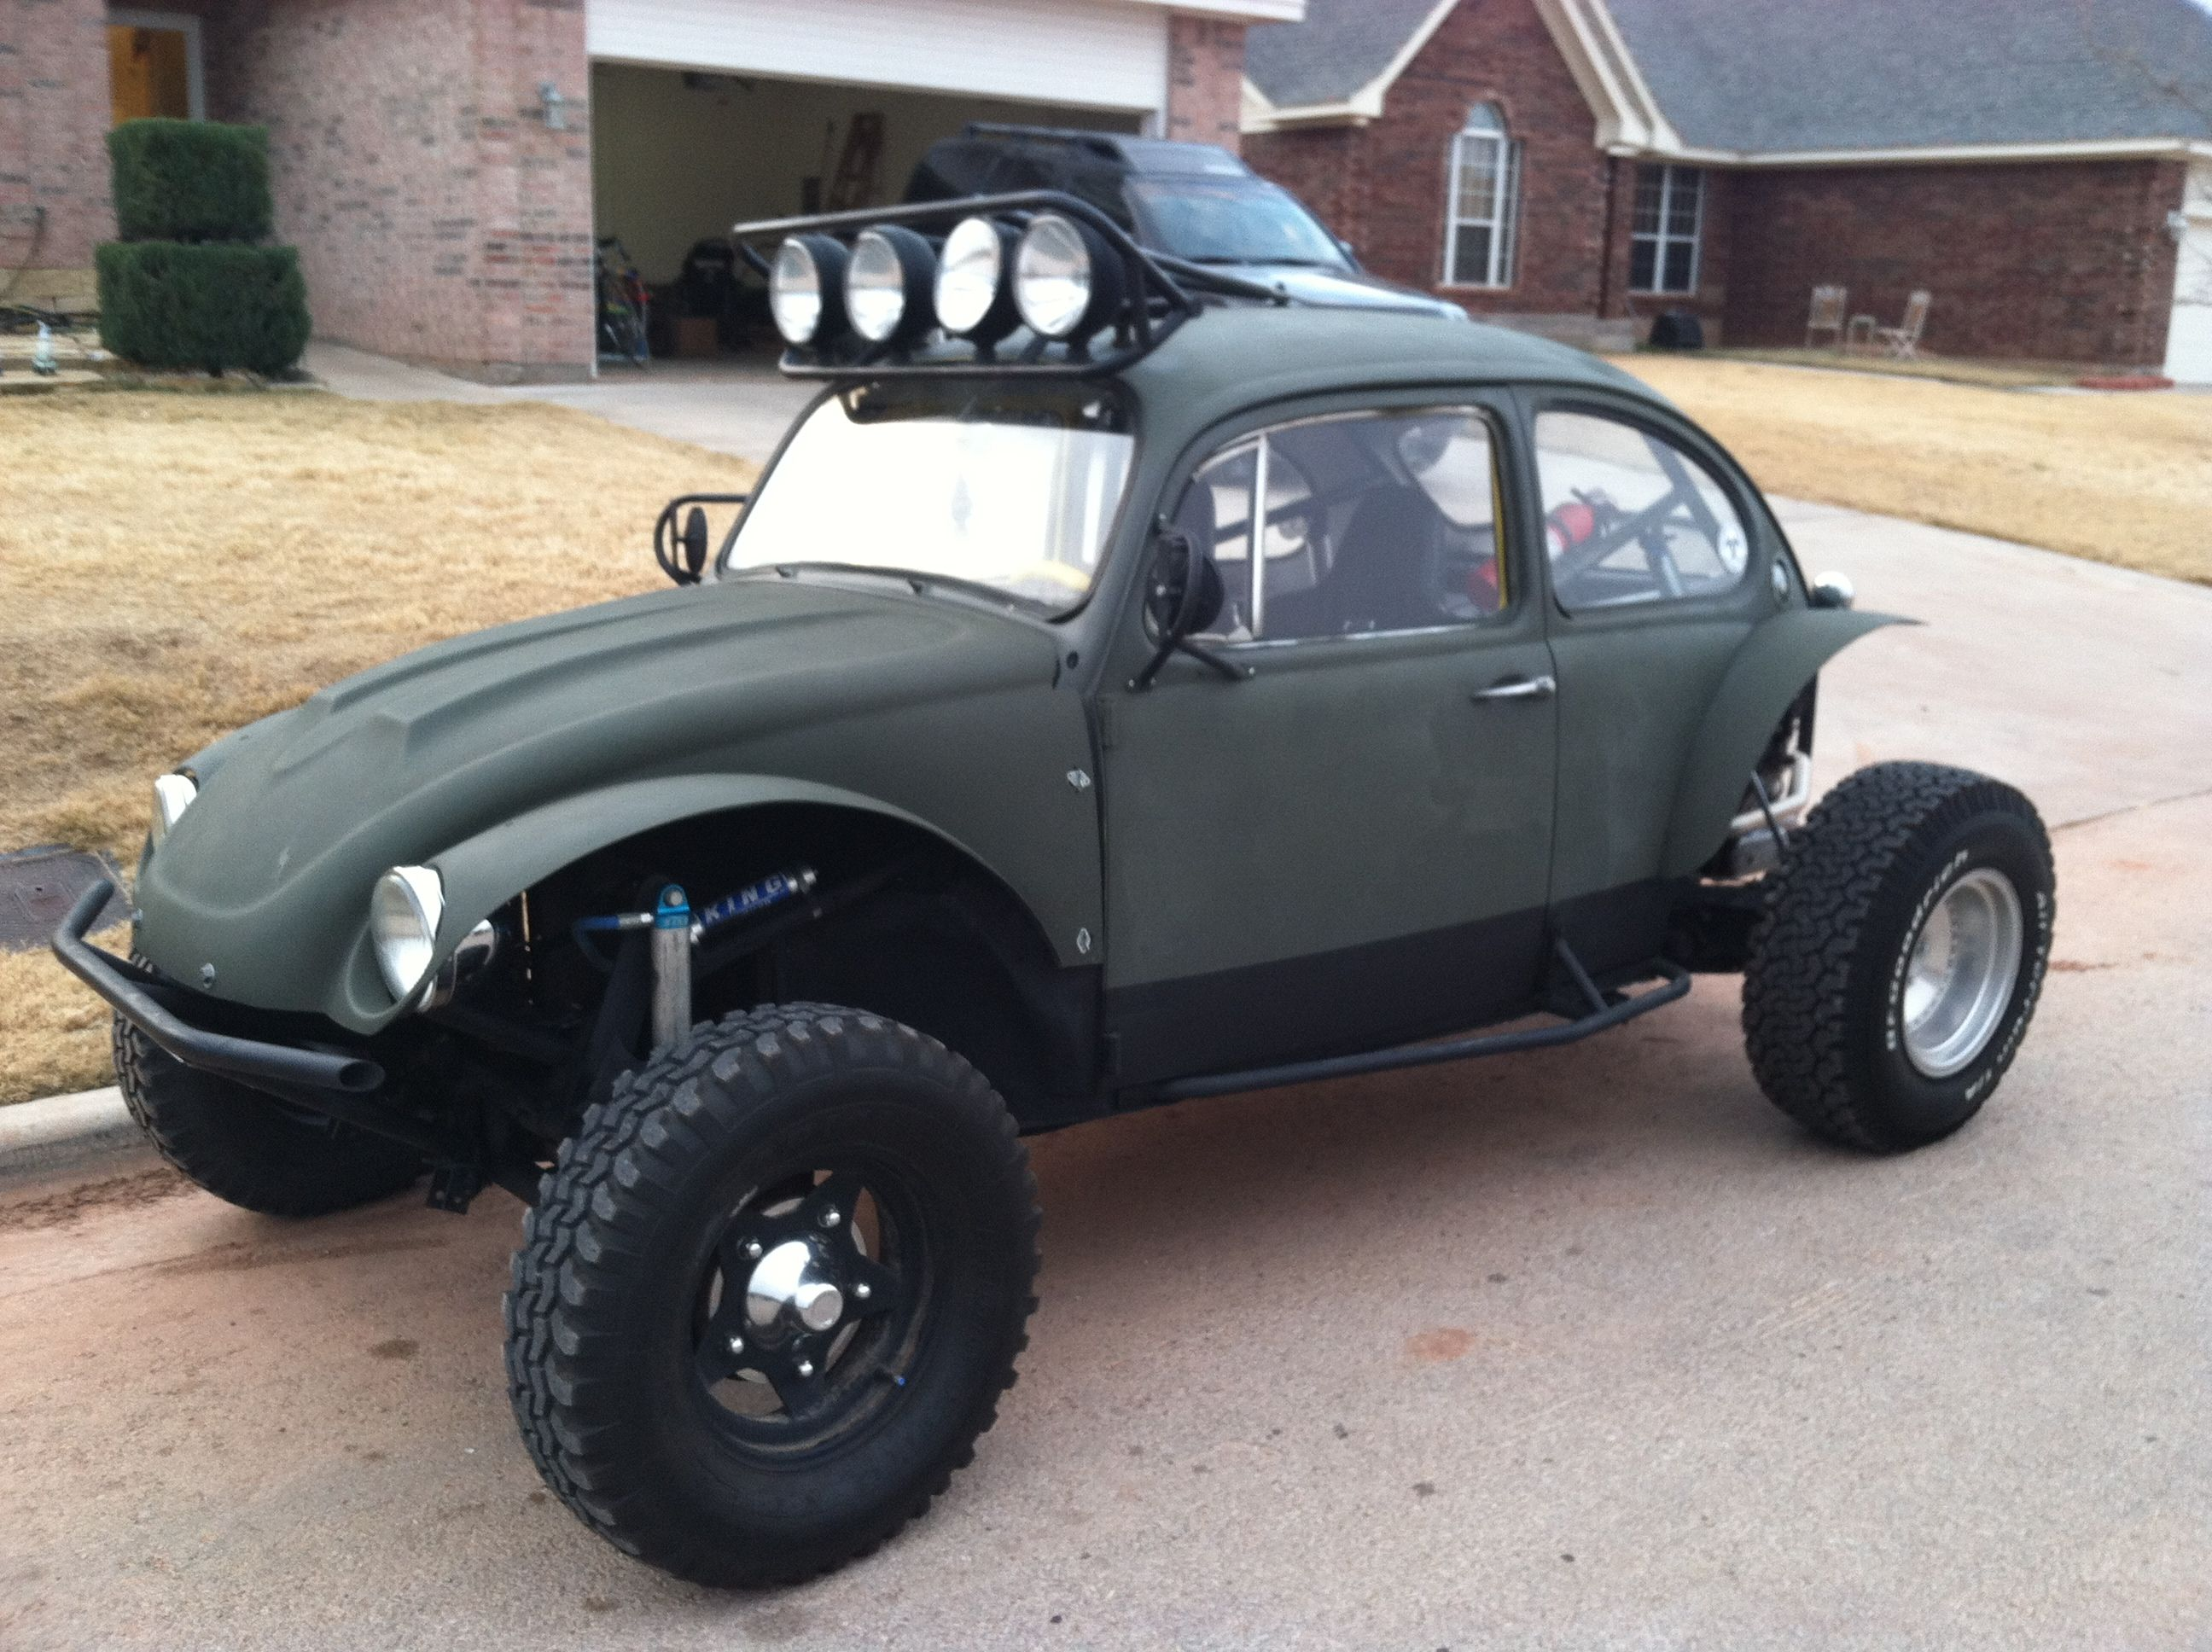 baja bug motorcycles scooters hot rods pinterest